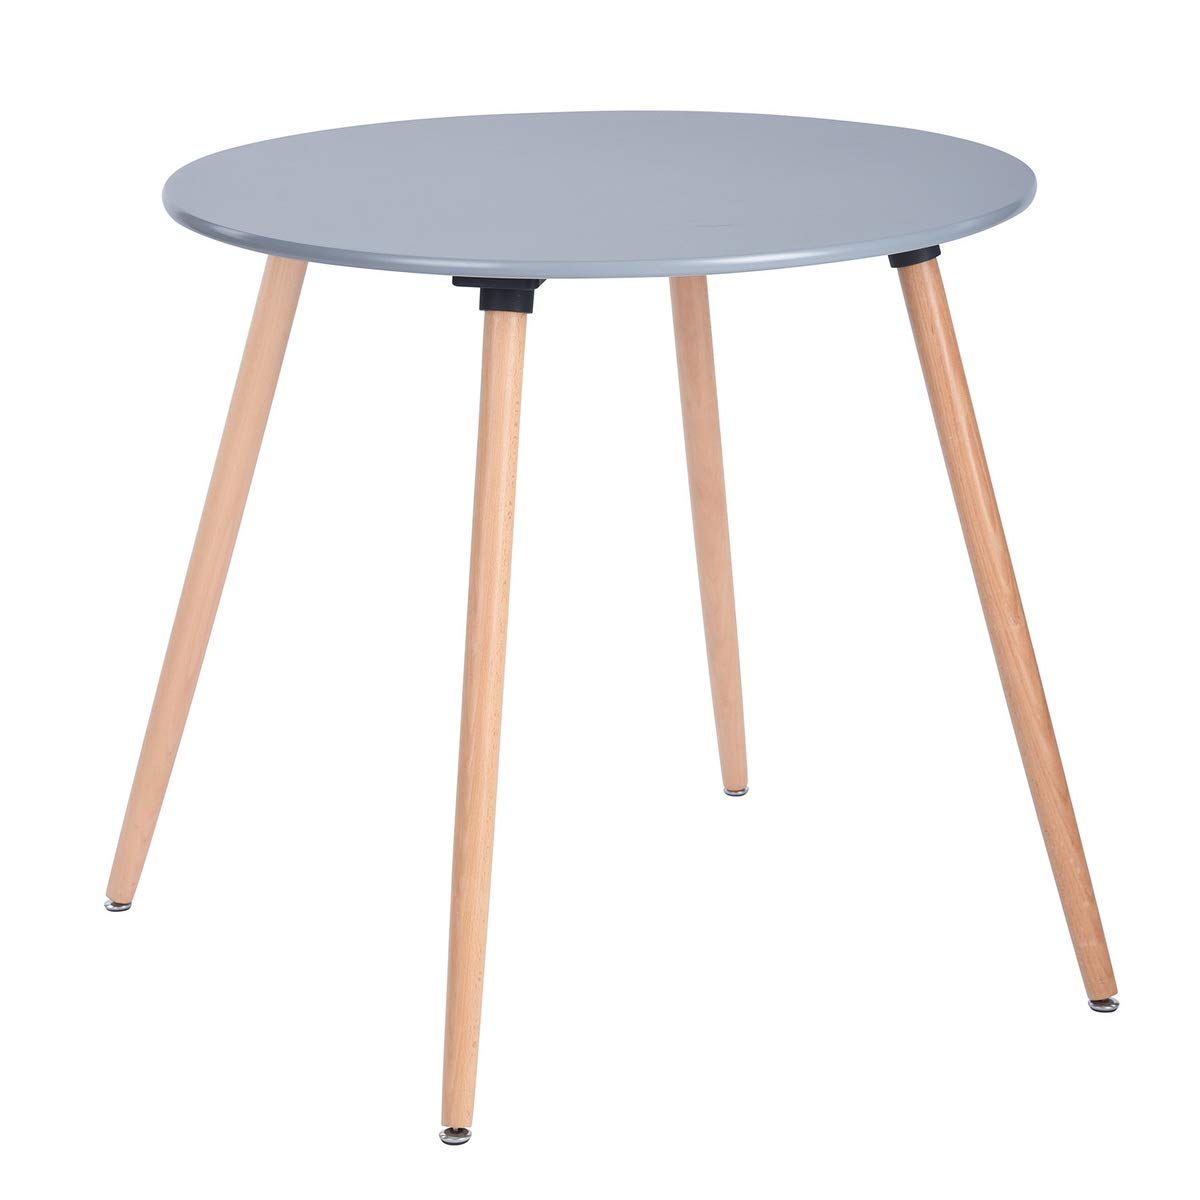 HOMY CASA Dining Table Round Coffee Table Mid Century Modern Kitchen Table Solid Wood Desk Grey